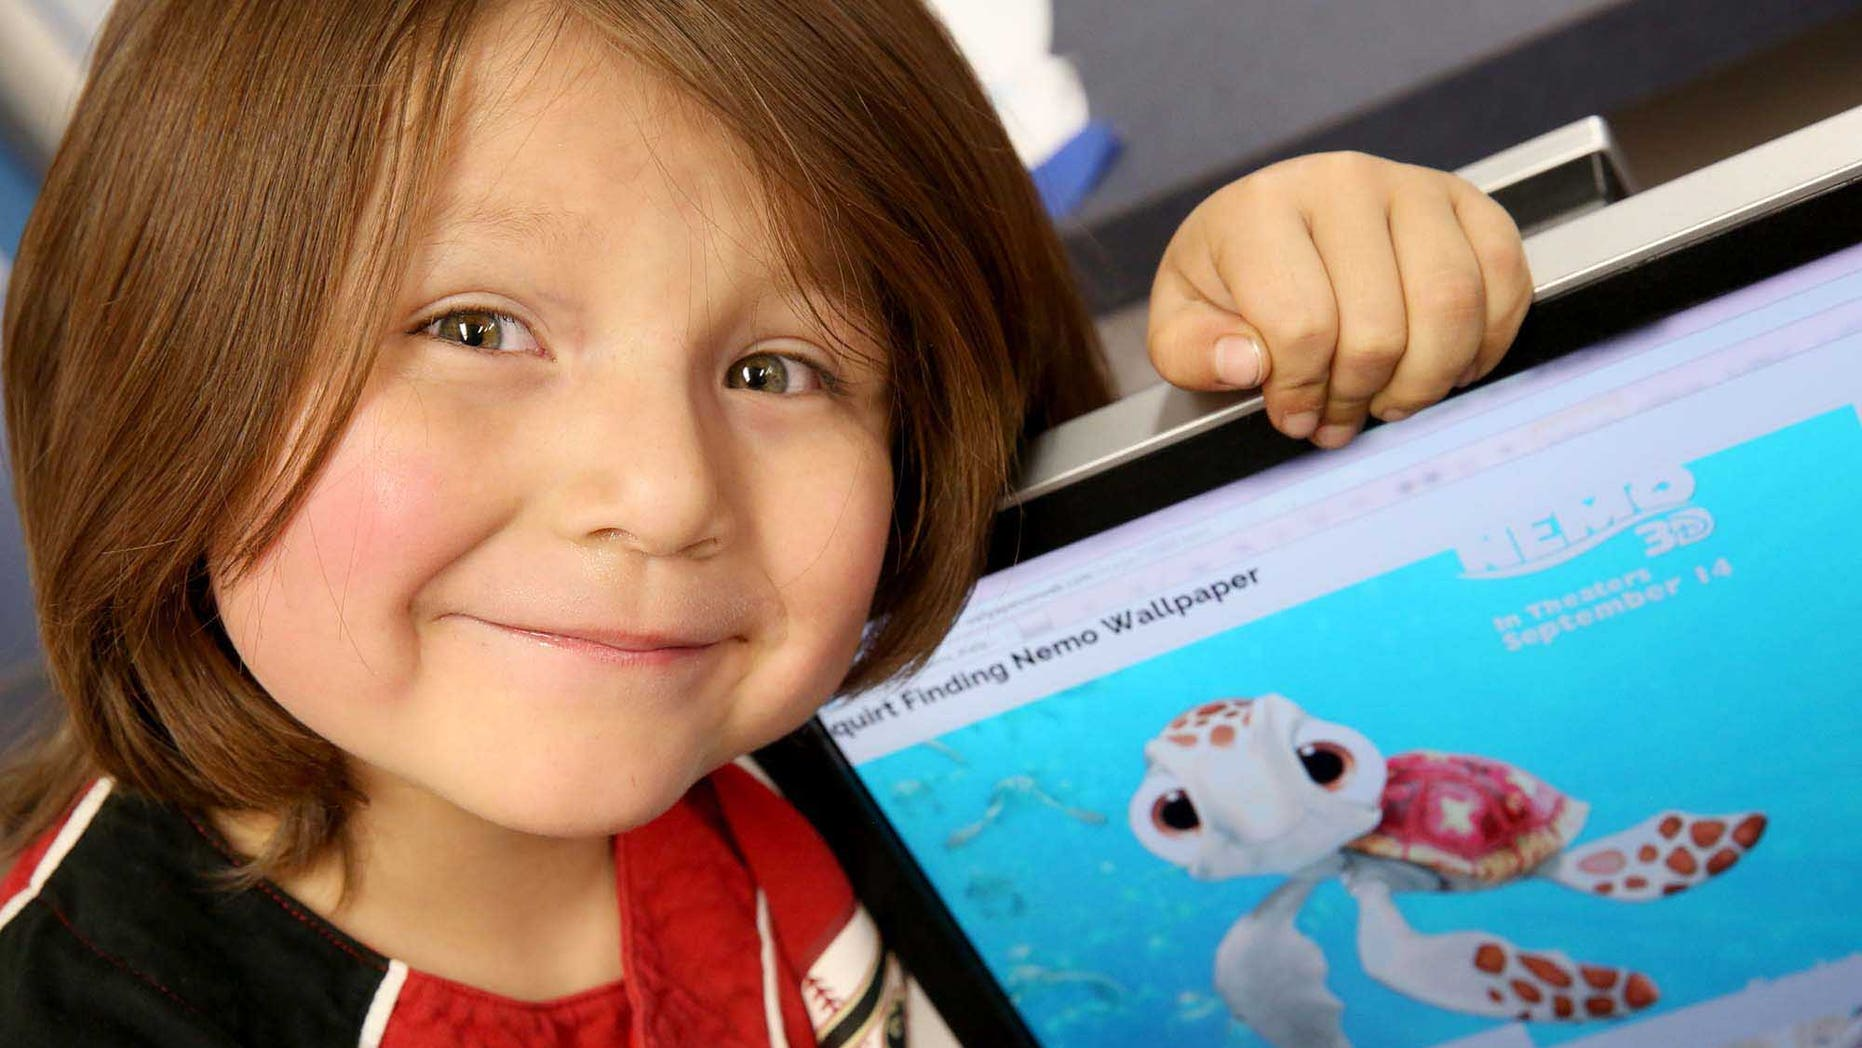 "This Wednesday, March 16, 2016 photo shows Mariano Esquivel, 6, in Flagstaff, Ariz. He recently got a start as a voice actor for the Navajo language version of ""Finding Nemo,"" only the second major motion picture to be translated. Mario lent his voice to several characters but primarily is the voice of Turtle Kid #6. ""Star Wars Episode IV: A New Hope"" became the first Hollywood feature translated in Navajo in 2013. (Jake Bacon/Arizona Daily Sun via AP)"